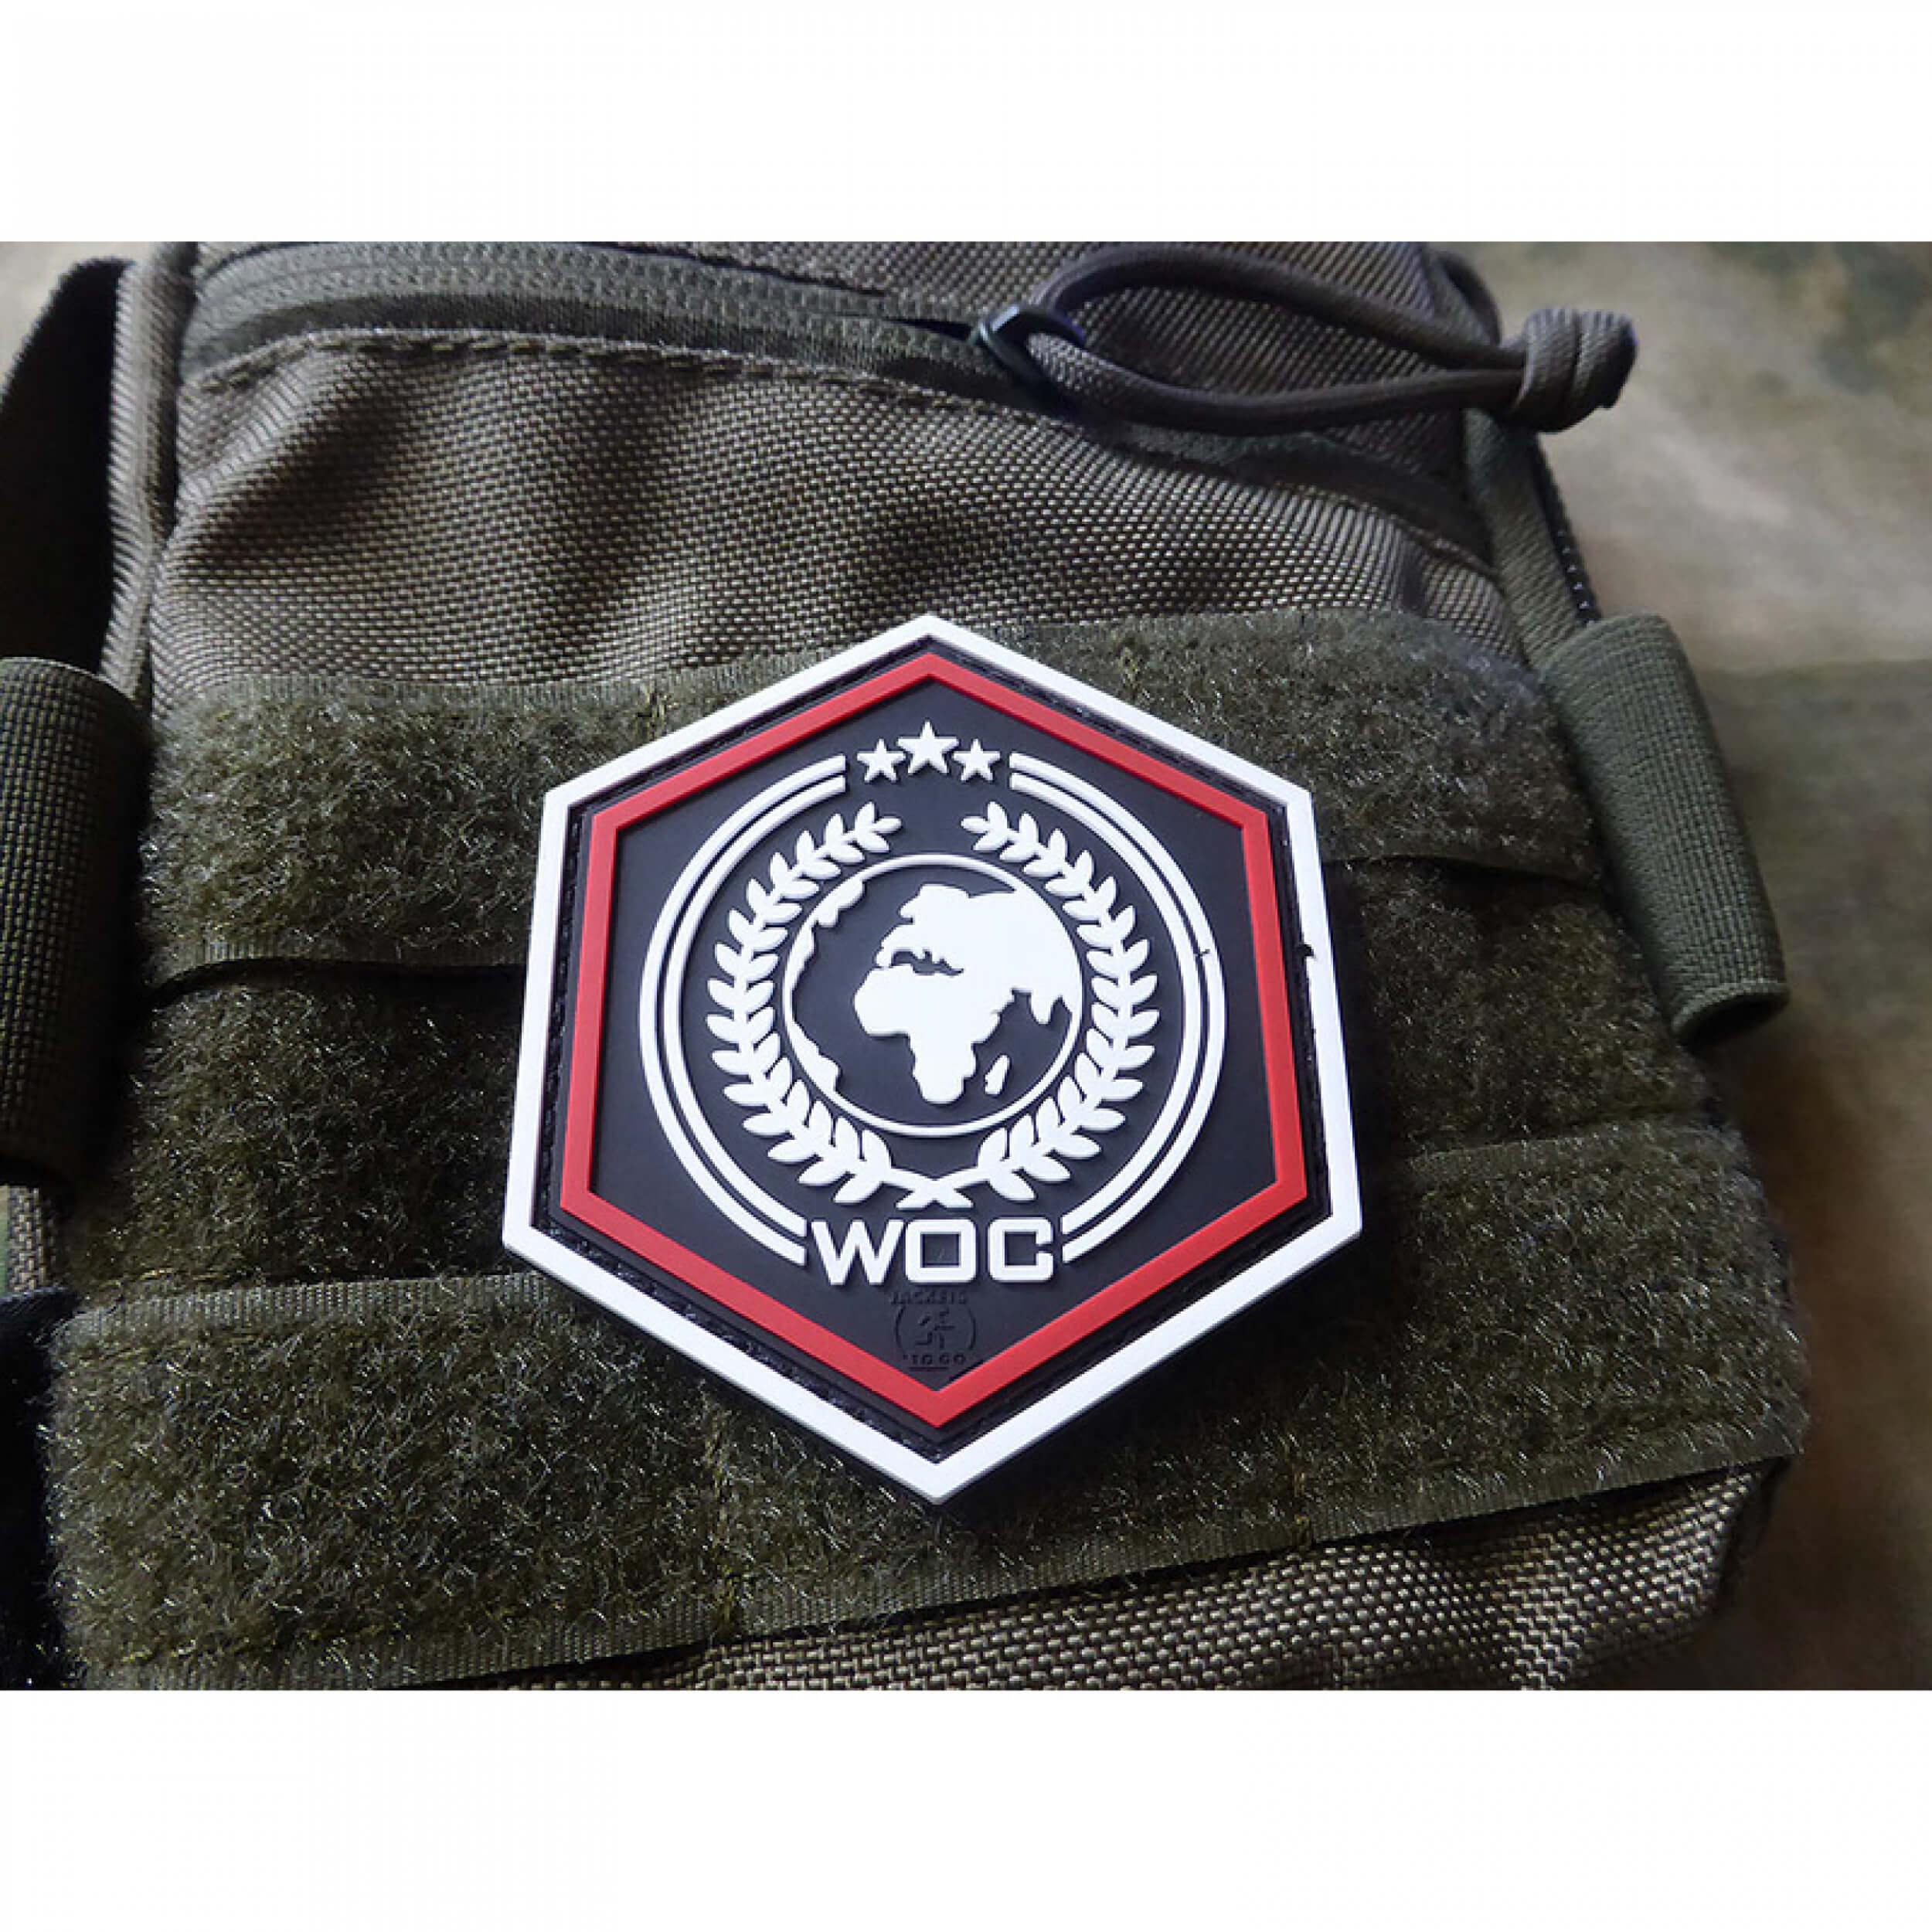 WOC NEW ORDER 3D Rubber Patch